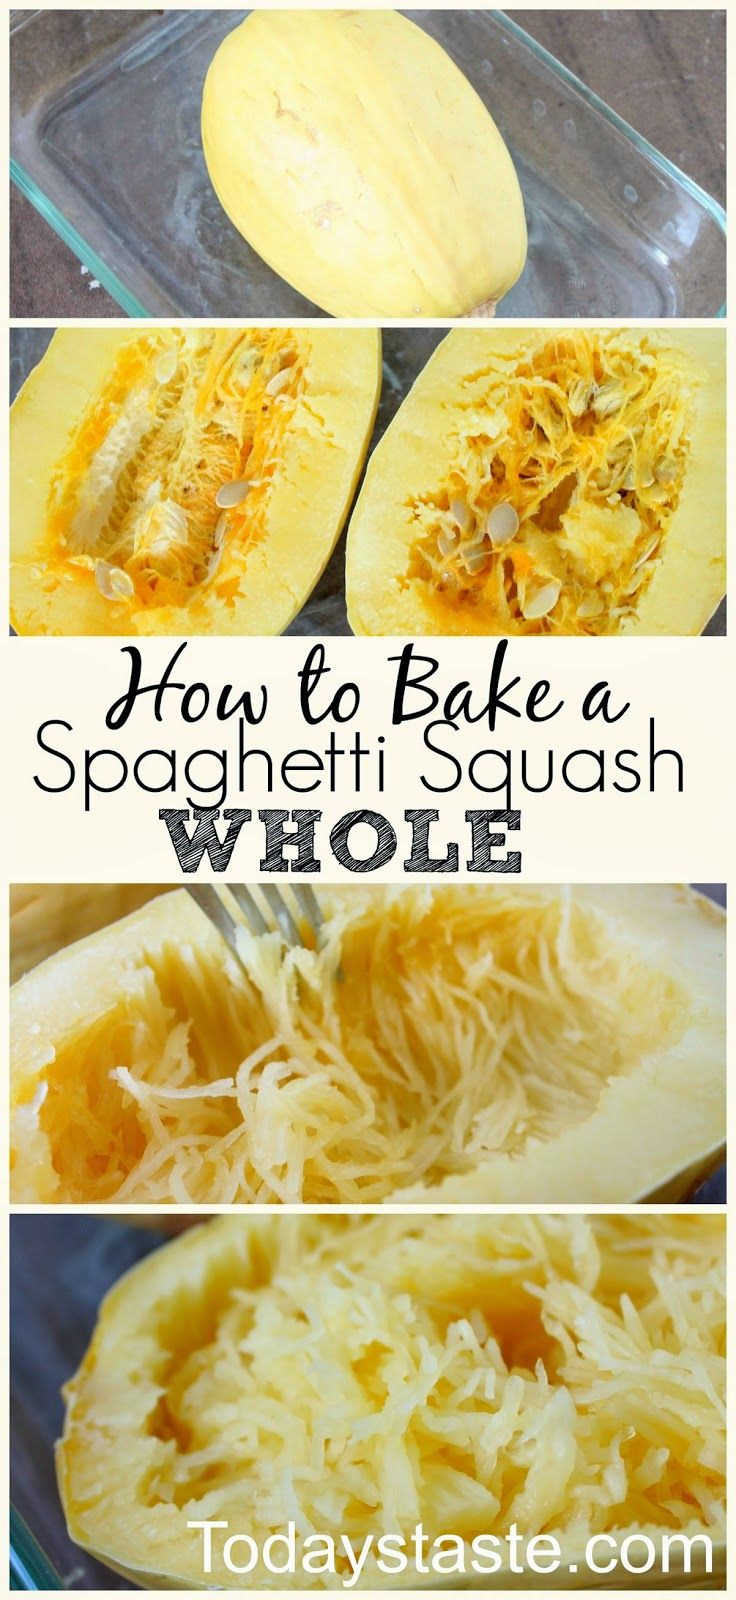 How to Bake A Spaghetti Squash Whole - So much easier than cutting it in half first!